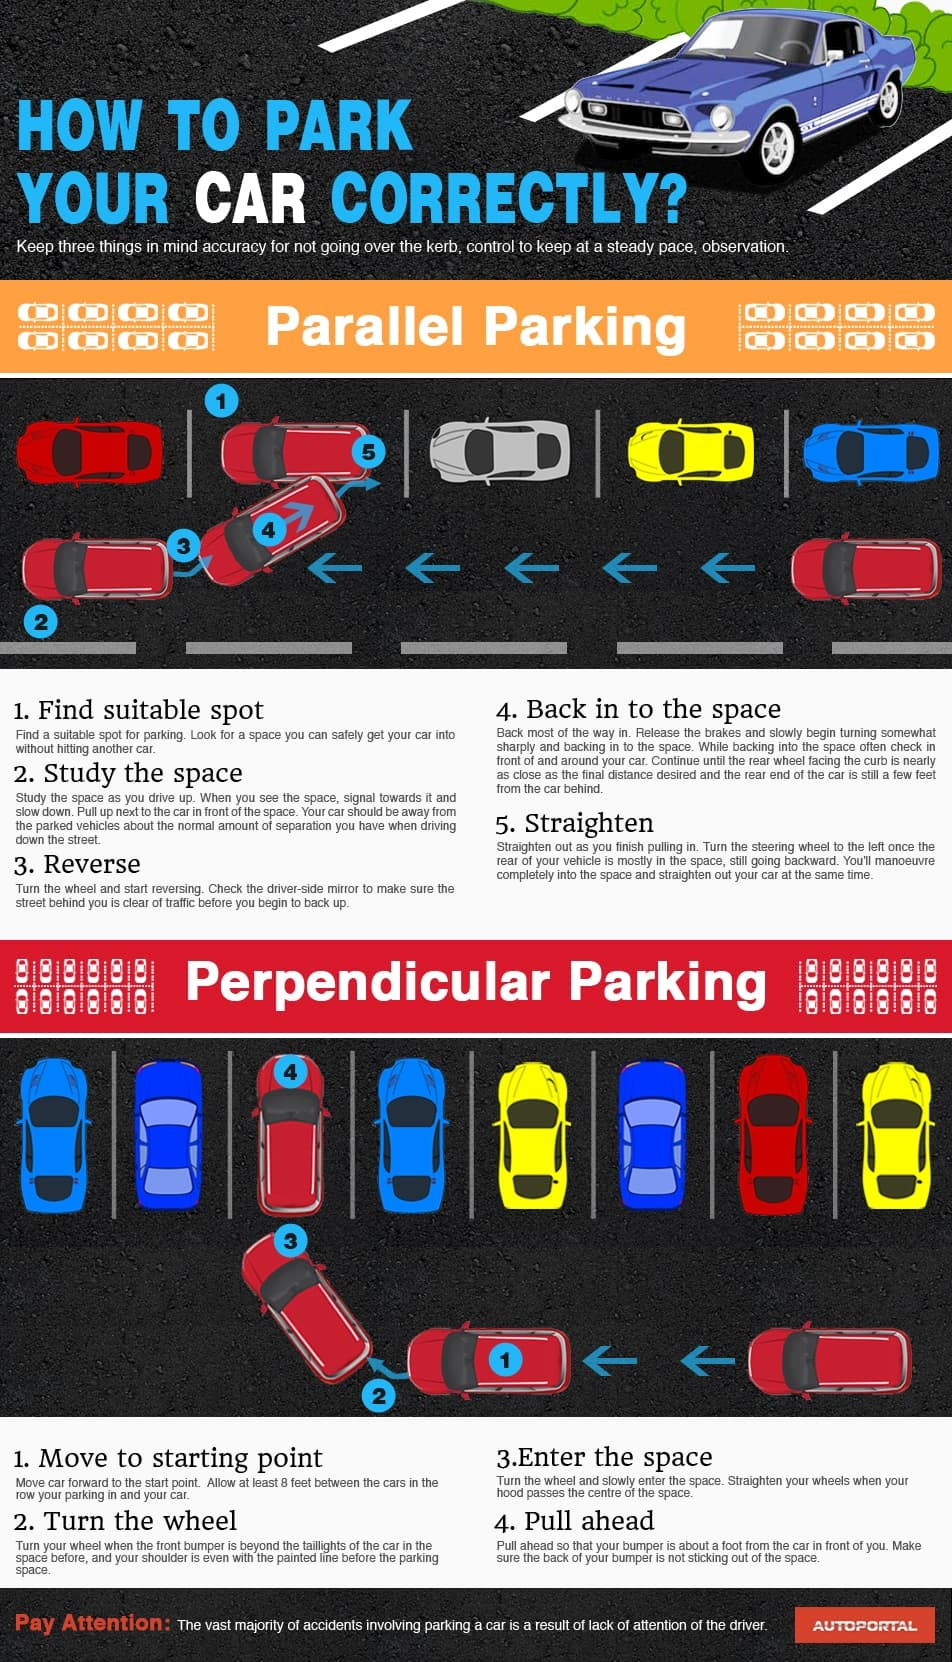 How To Park >> Car Parking Guide How To Park Your Car Correctly Autoportal